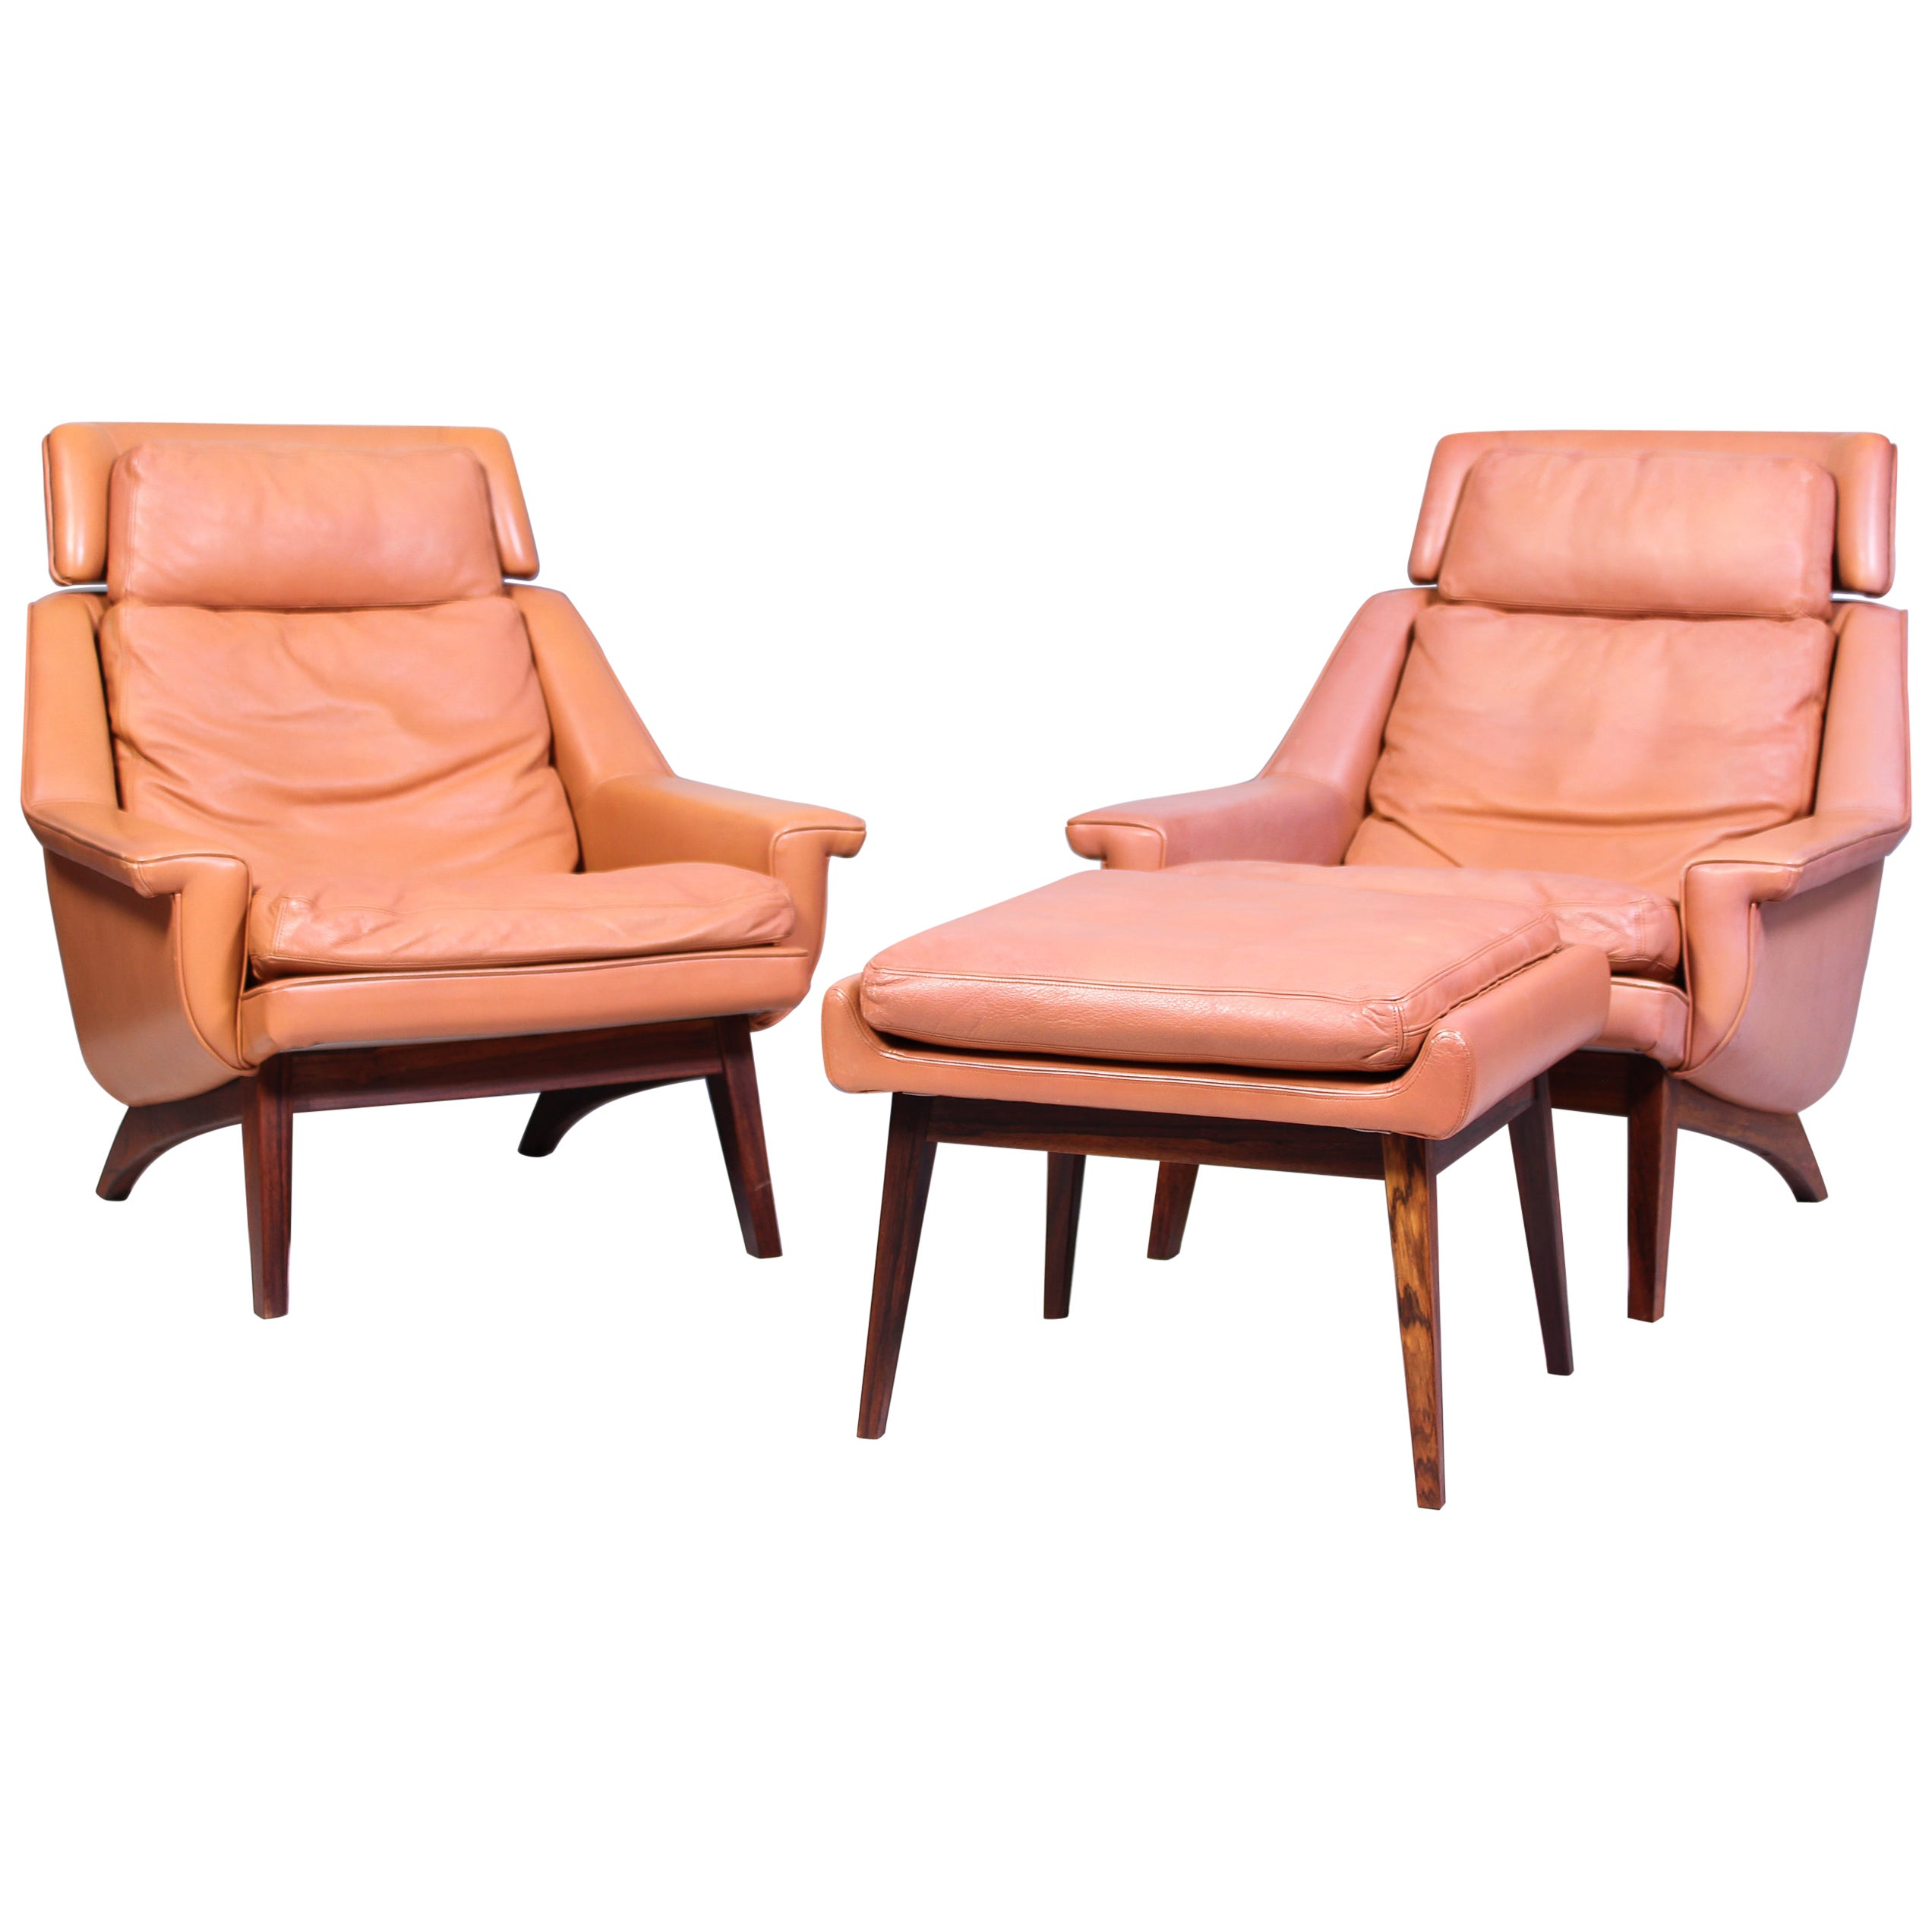 Leather & Rosewood Lounge Chairs and Ottoman by Werner Langenfled, Denmark 1960s